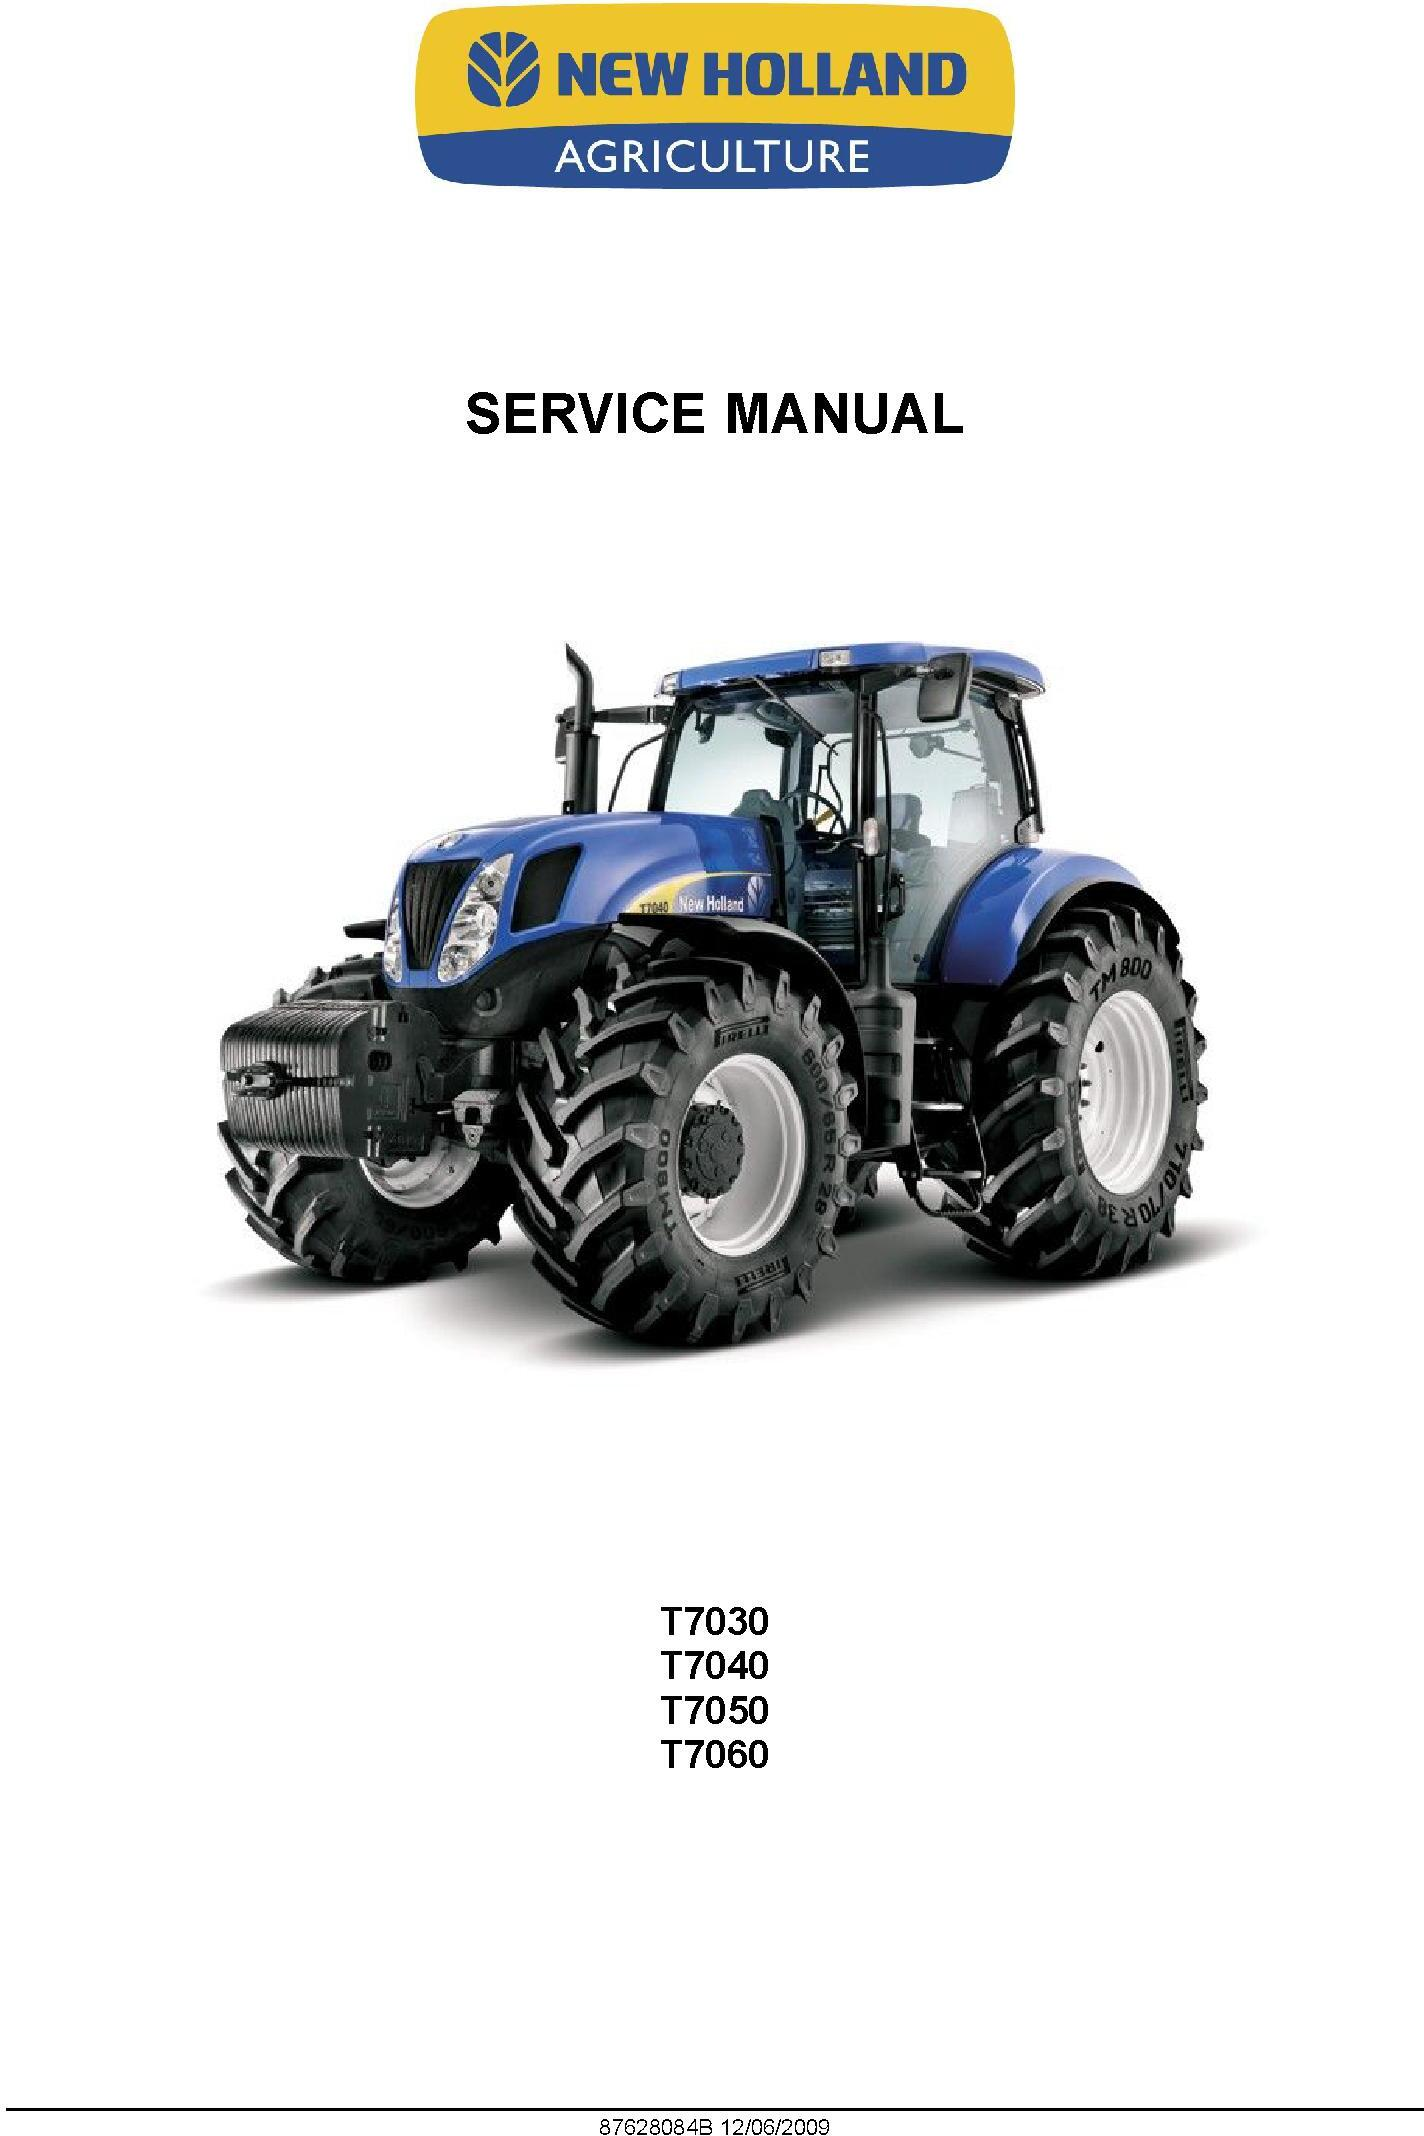 New Holland T7030, T7040, T7050, T7060 Tractor Service Manual - 19625